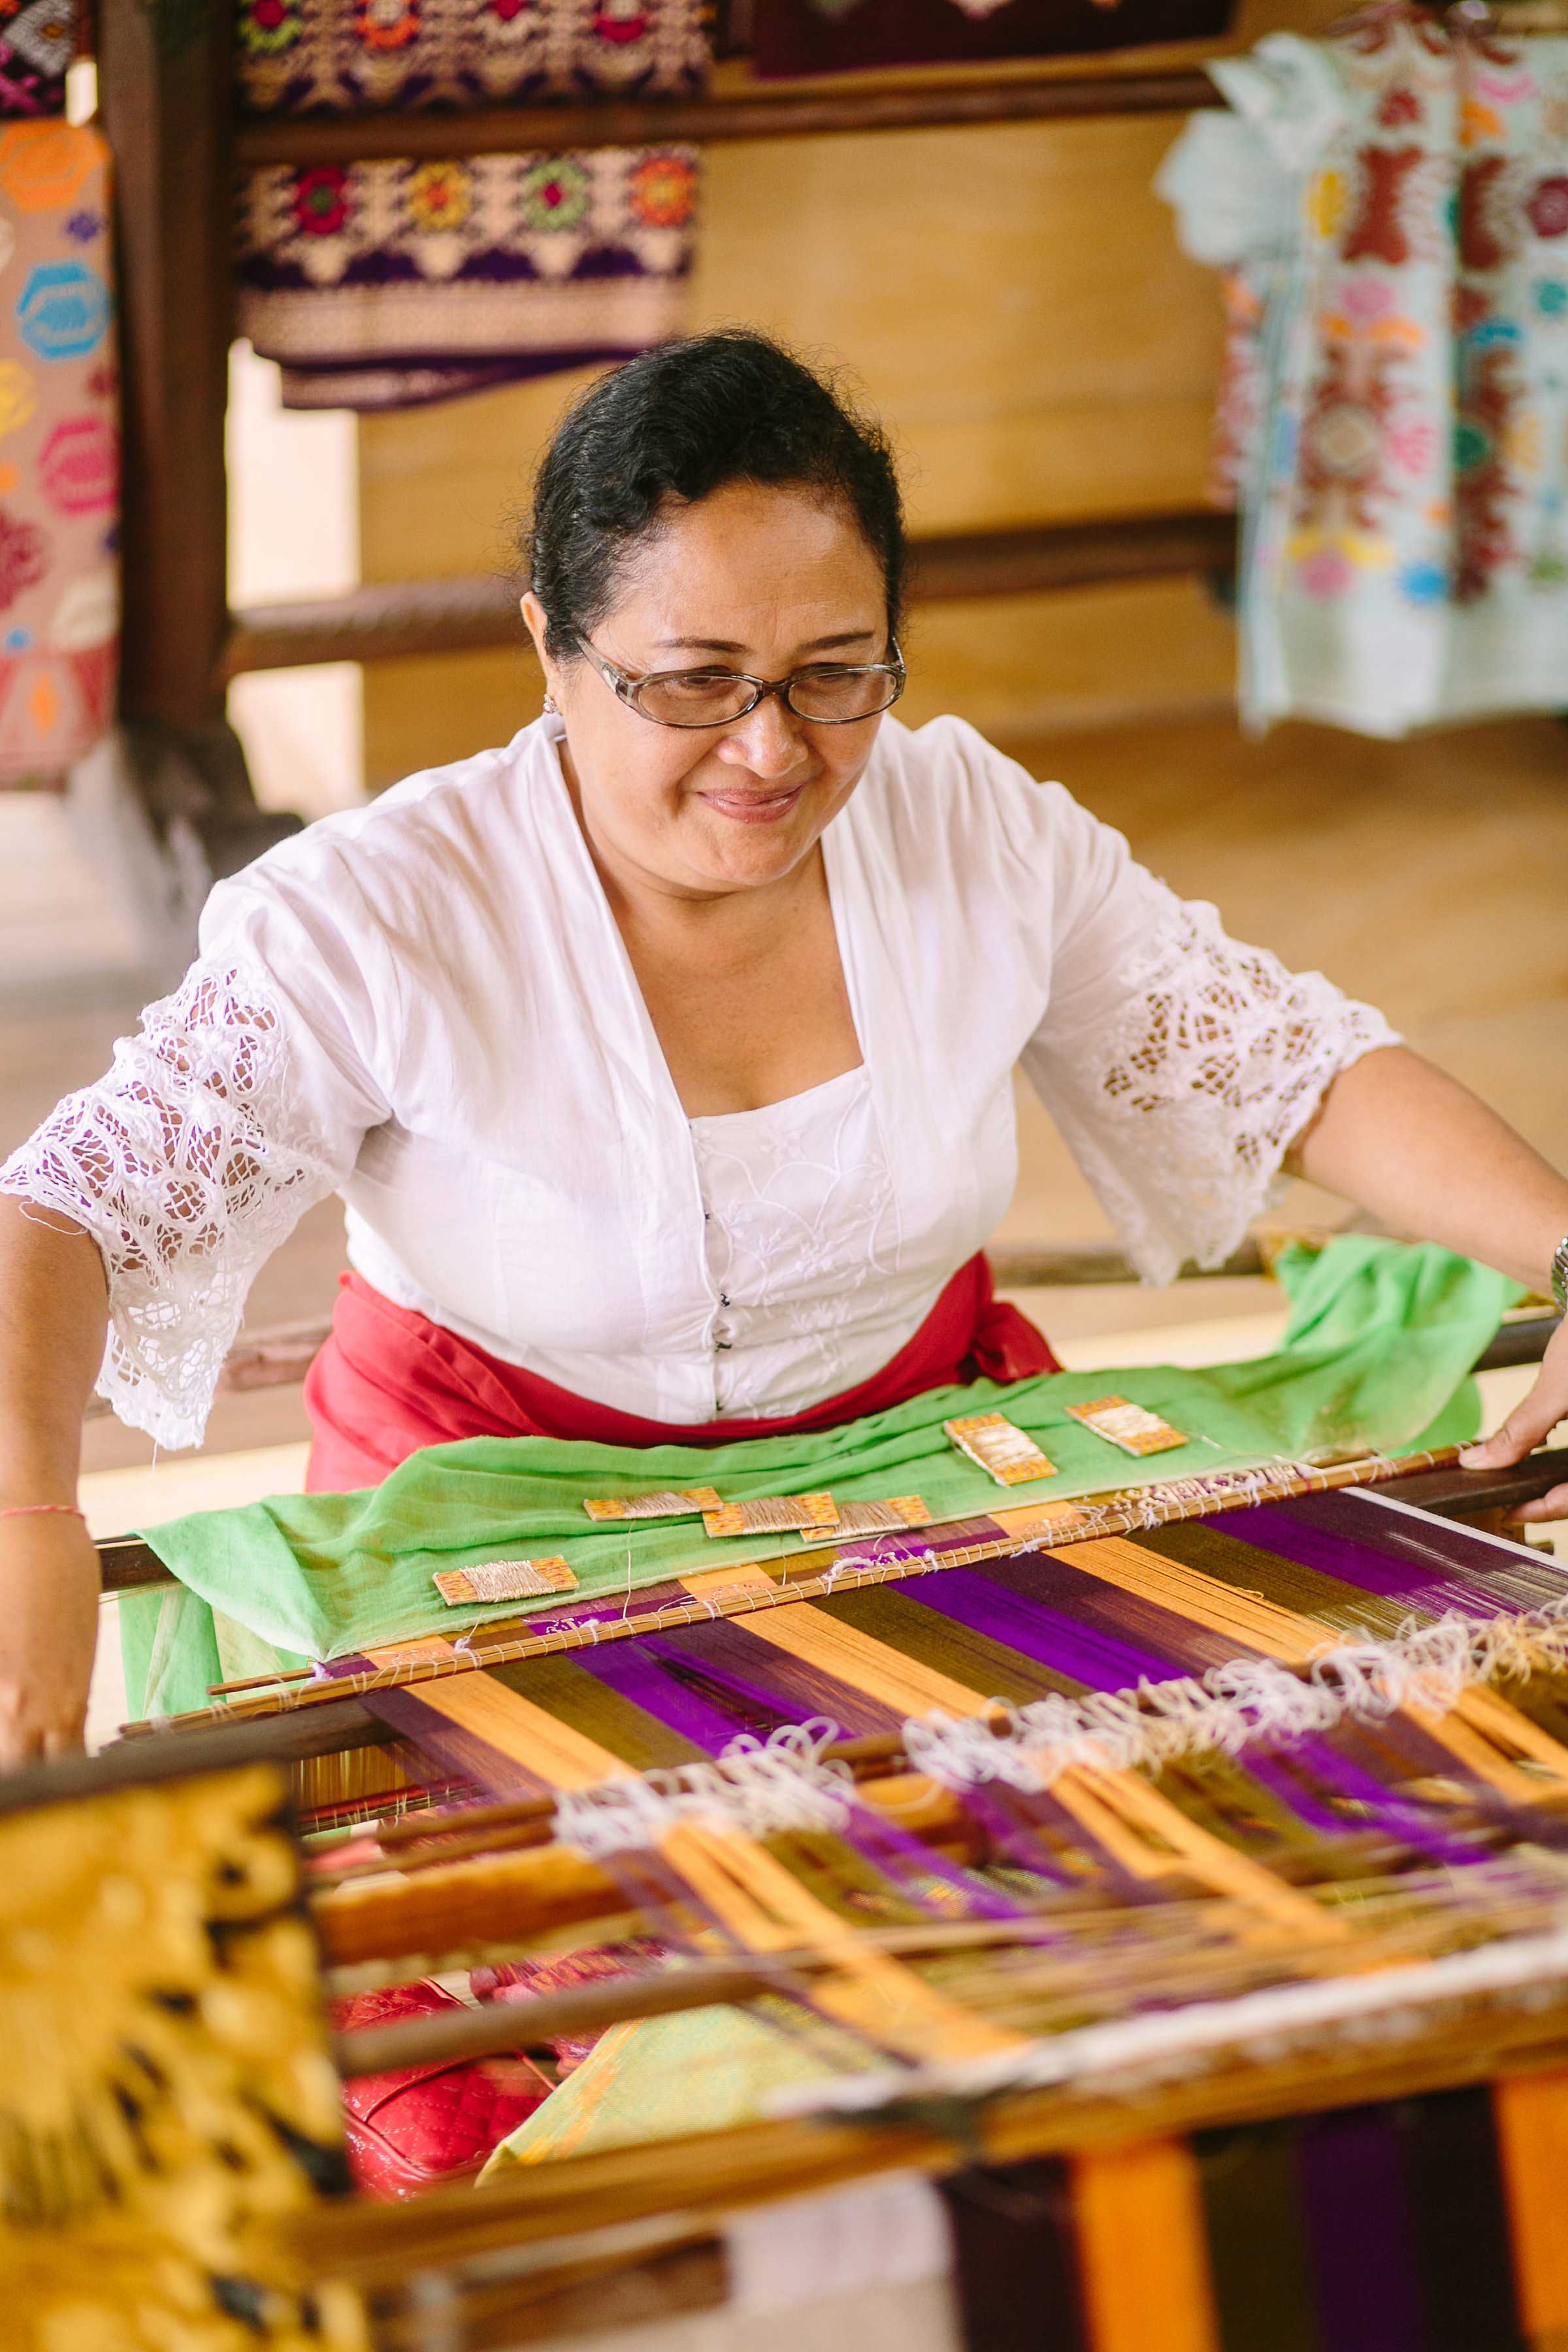 Woman making textiles on loom at The Mulia Resort in Bali Marry at the Mulia event